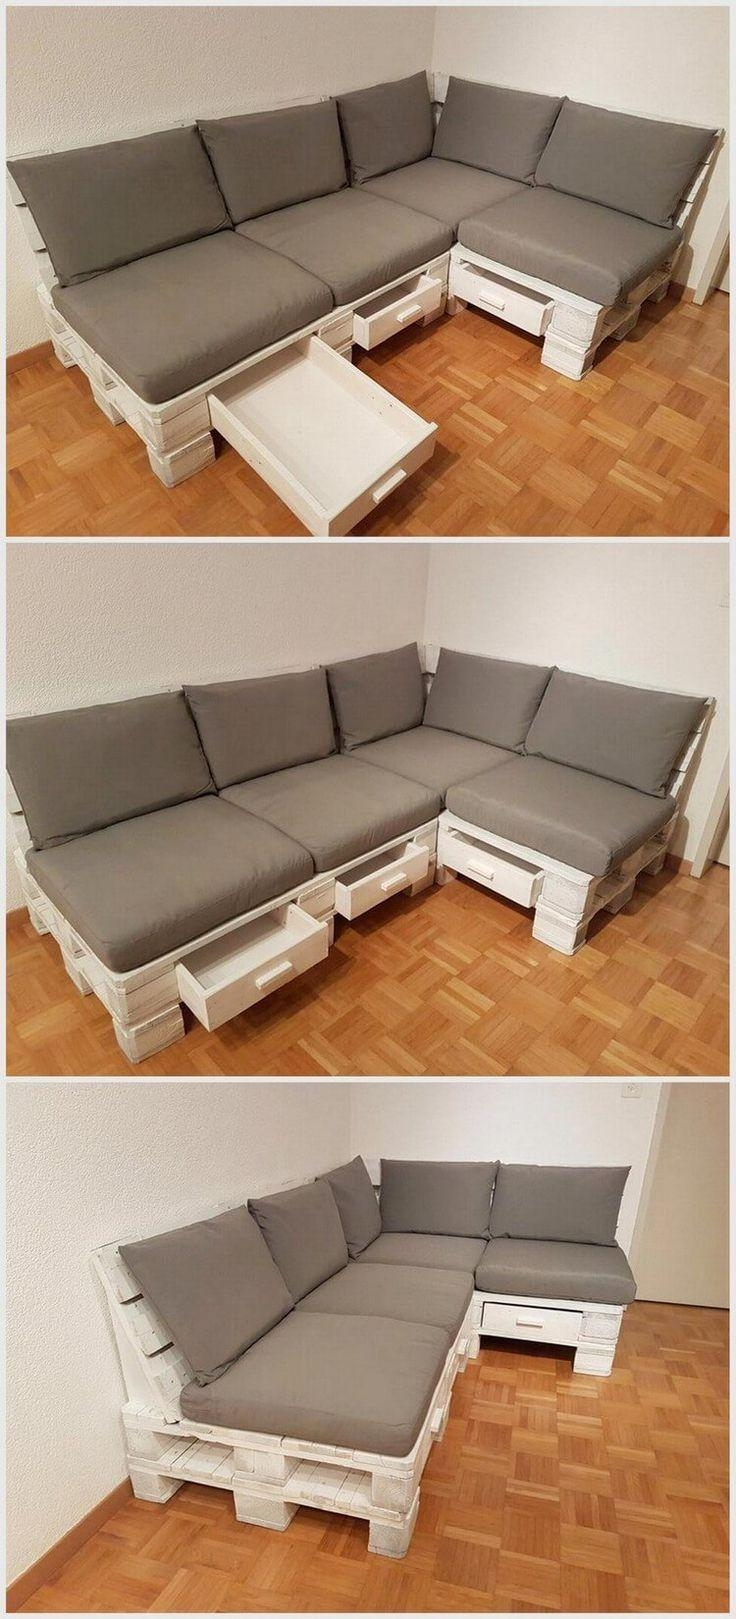 25+ Best Pallet Couch Ideas On Pinterest | Pallet Sofa, Pallet Intended For Pallet Sofas (View 6 of 20)